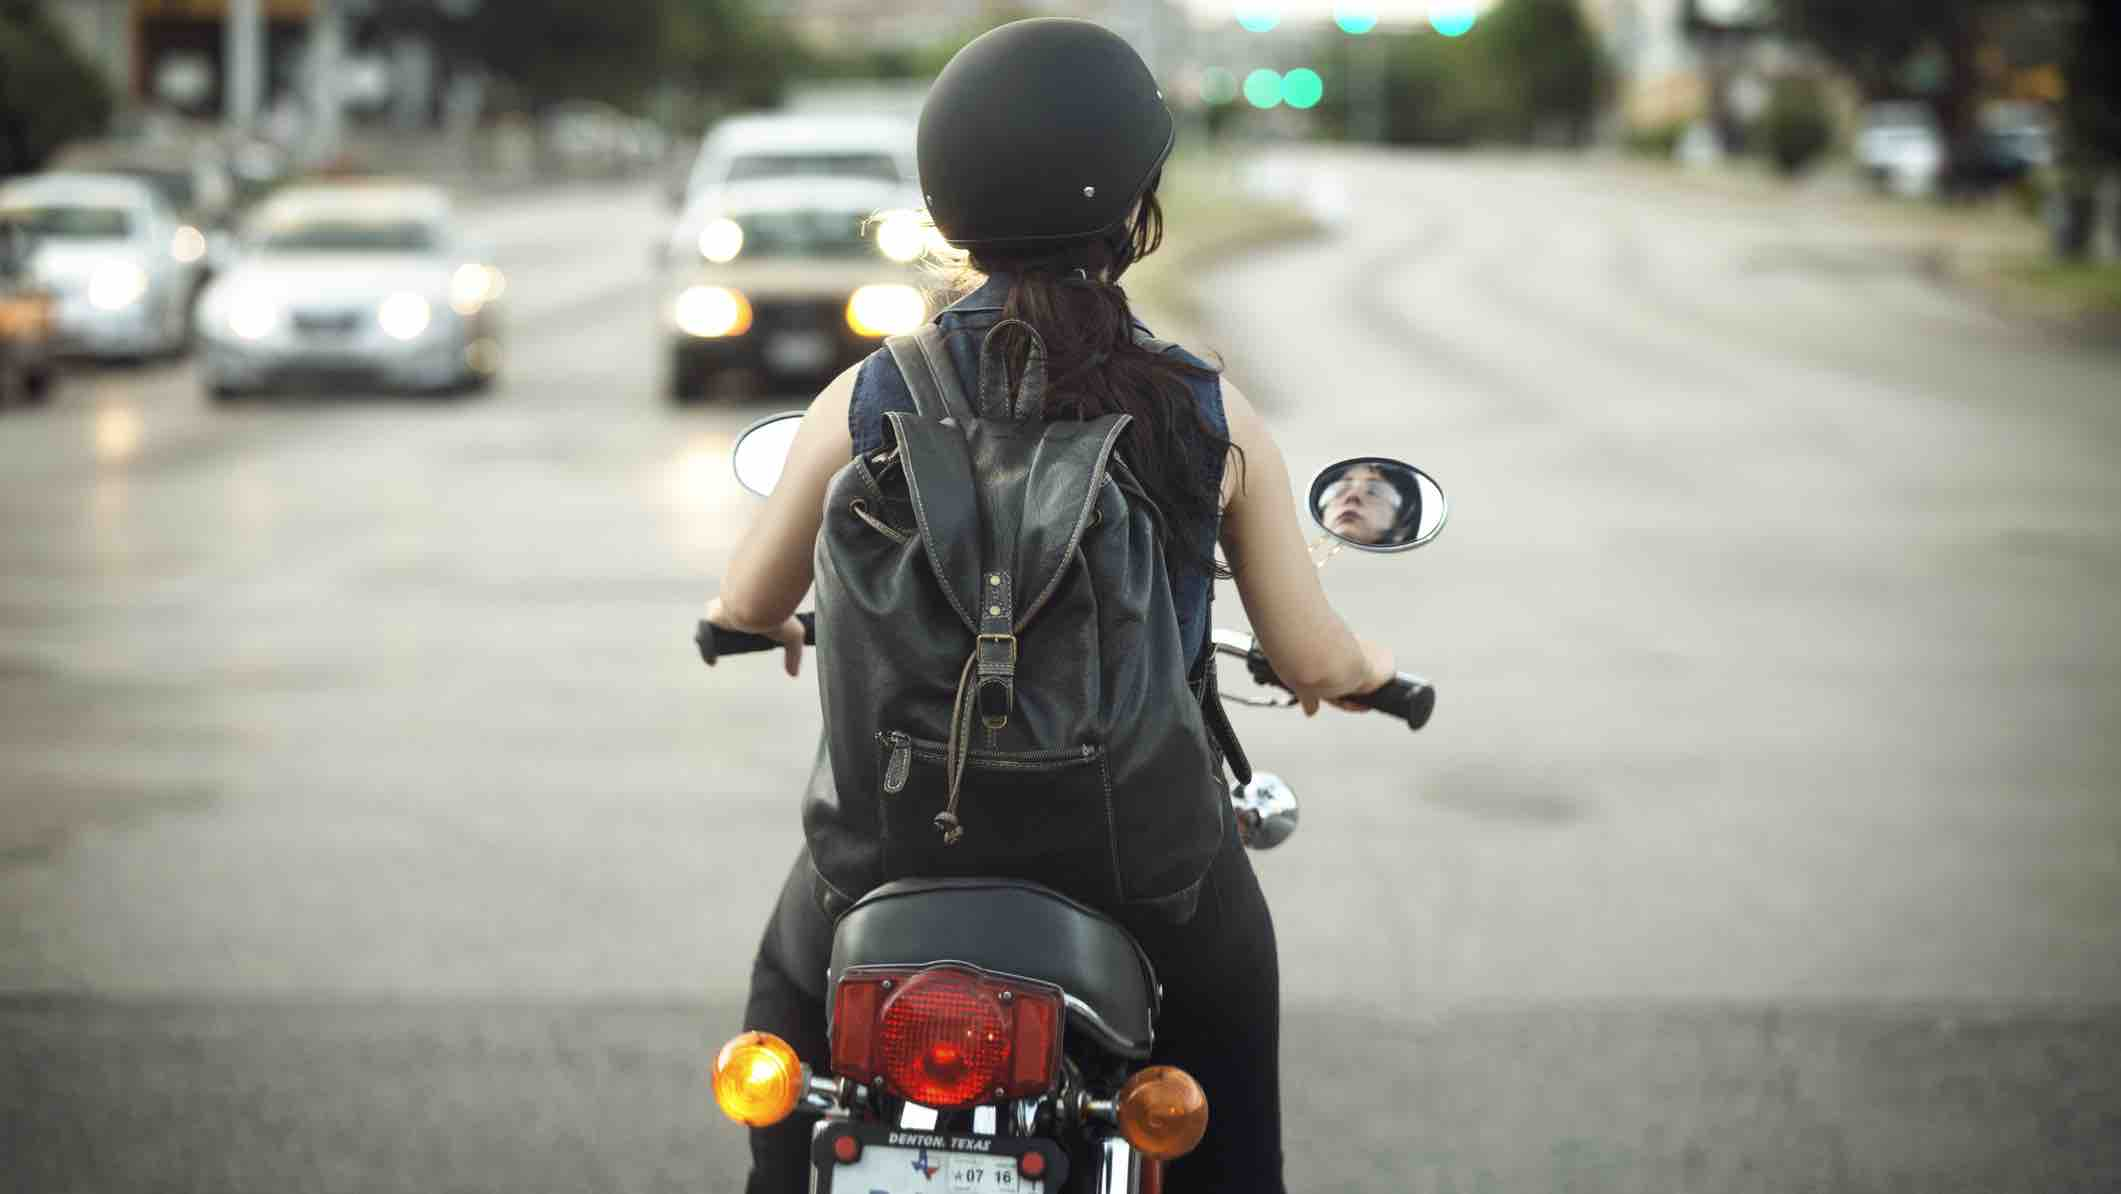 Person on motorcycle looking at cars